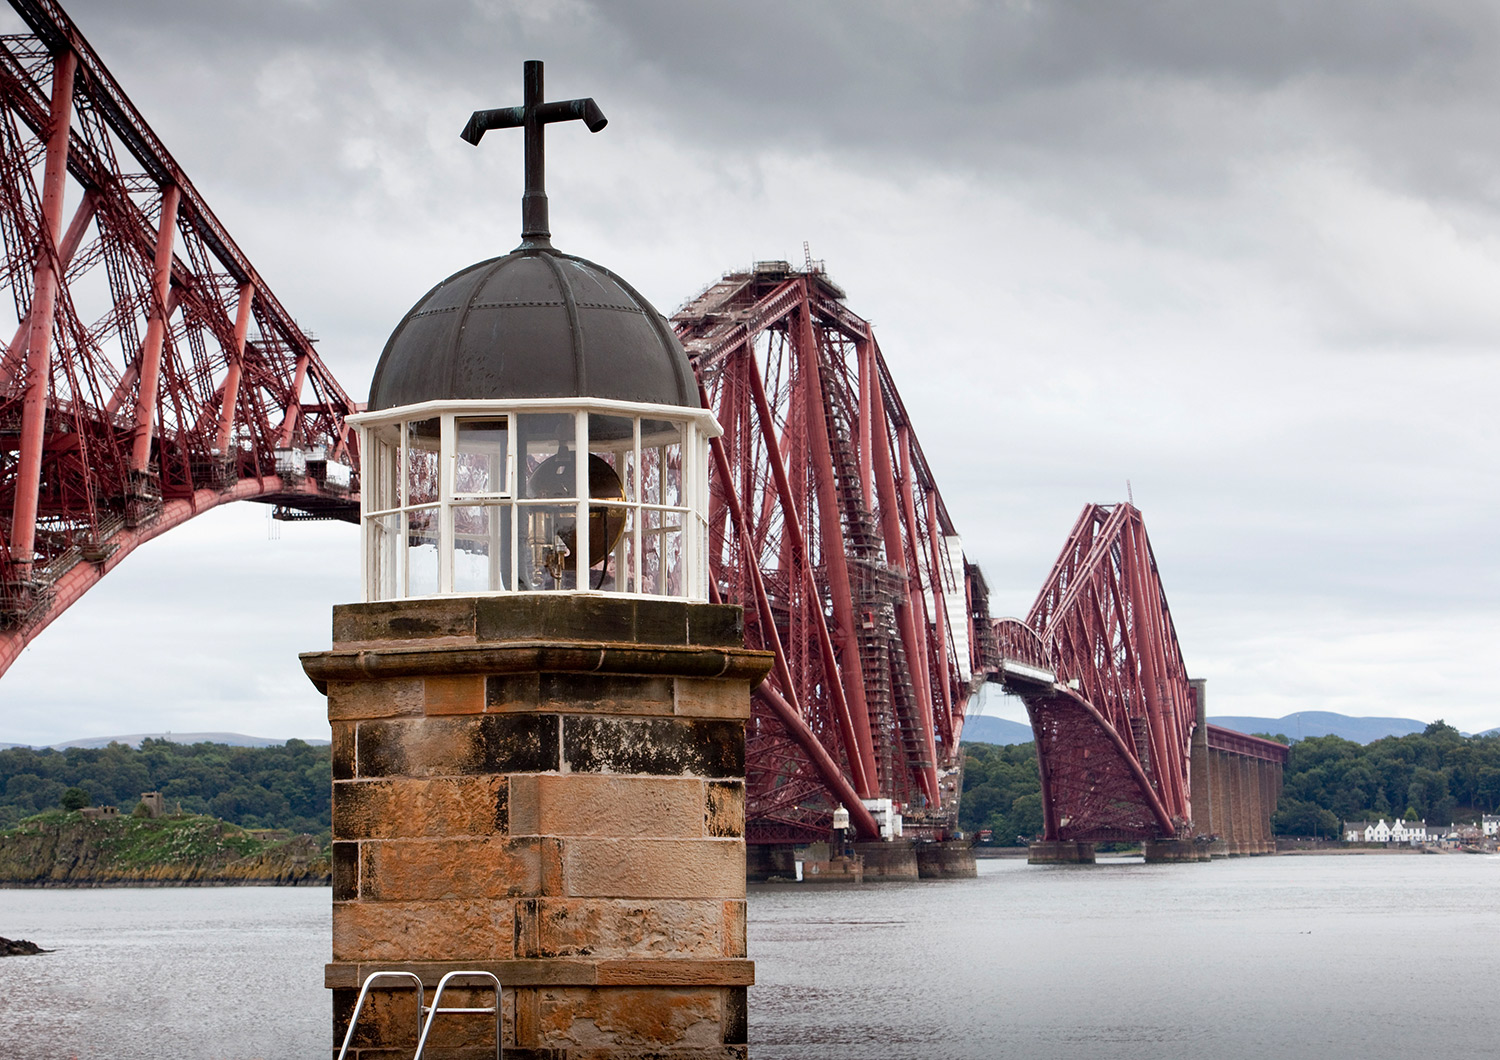 The top of a small light tower, with the Forth Bridge beyond.